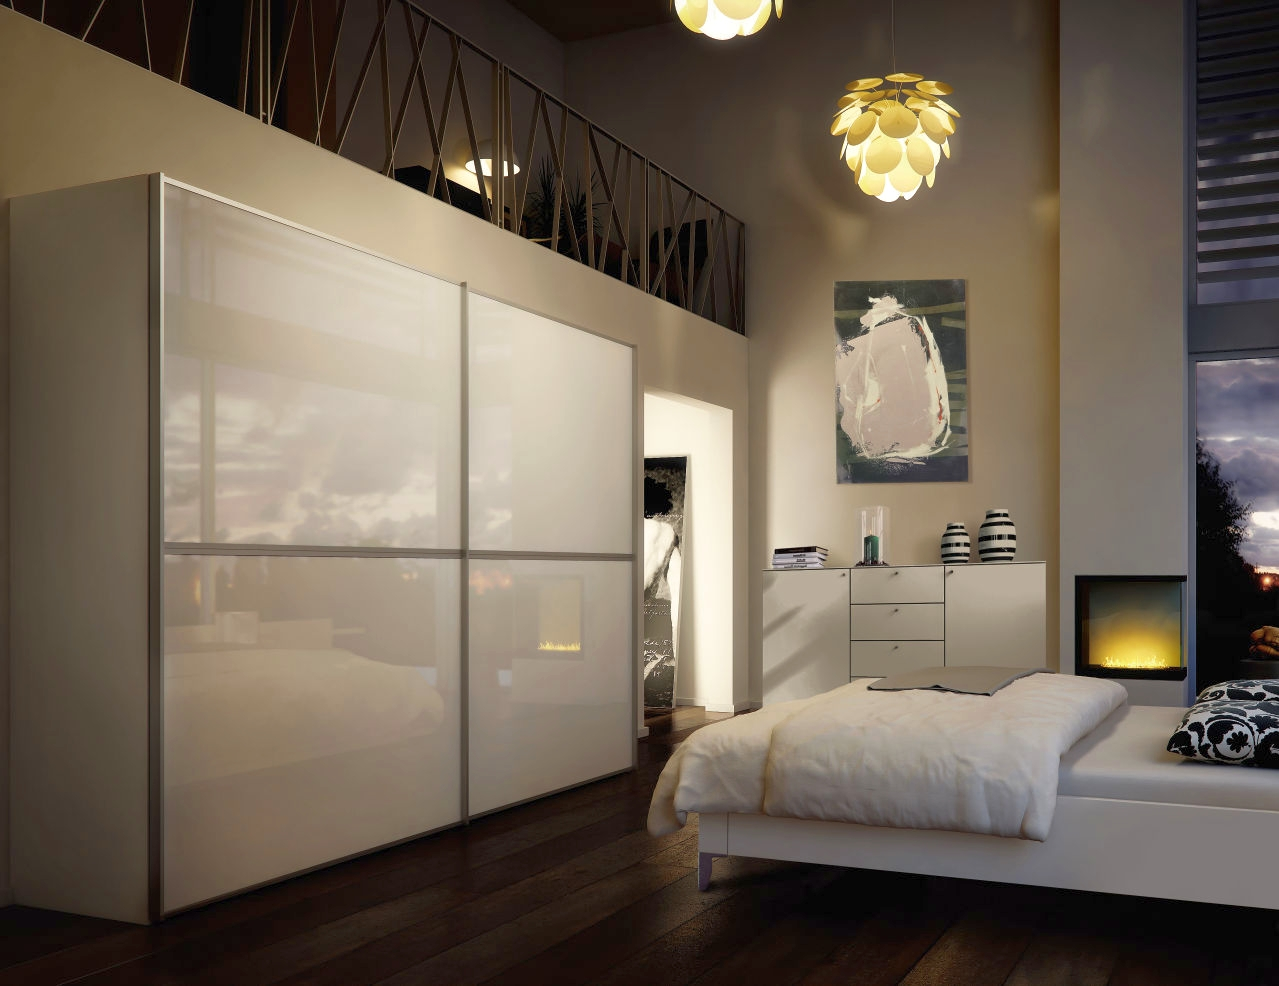 h lsta schlafzimmer cutaro schlafzimmer h lsta cutaro nur. Black Bedroom Furniture Sets. Home Design Ideas